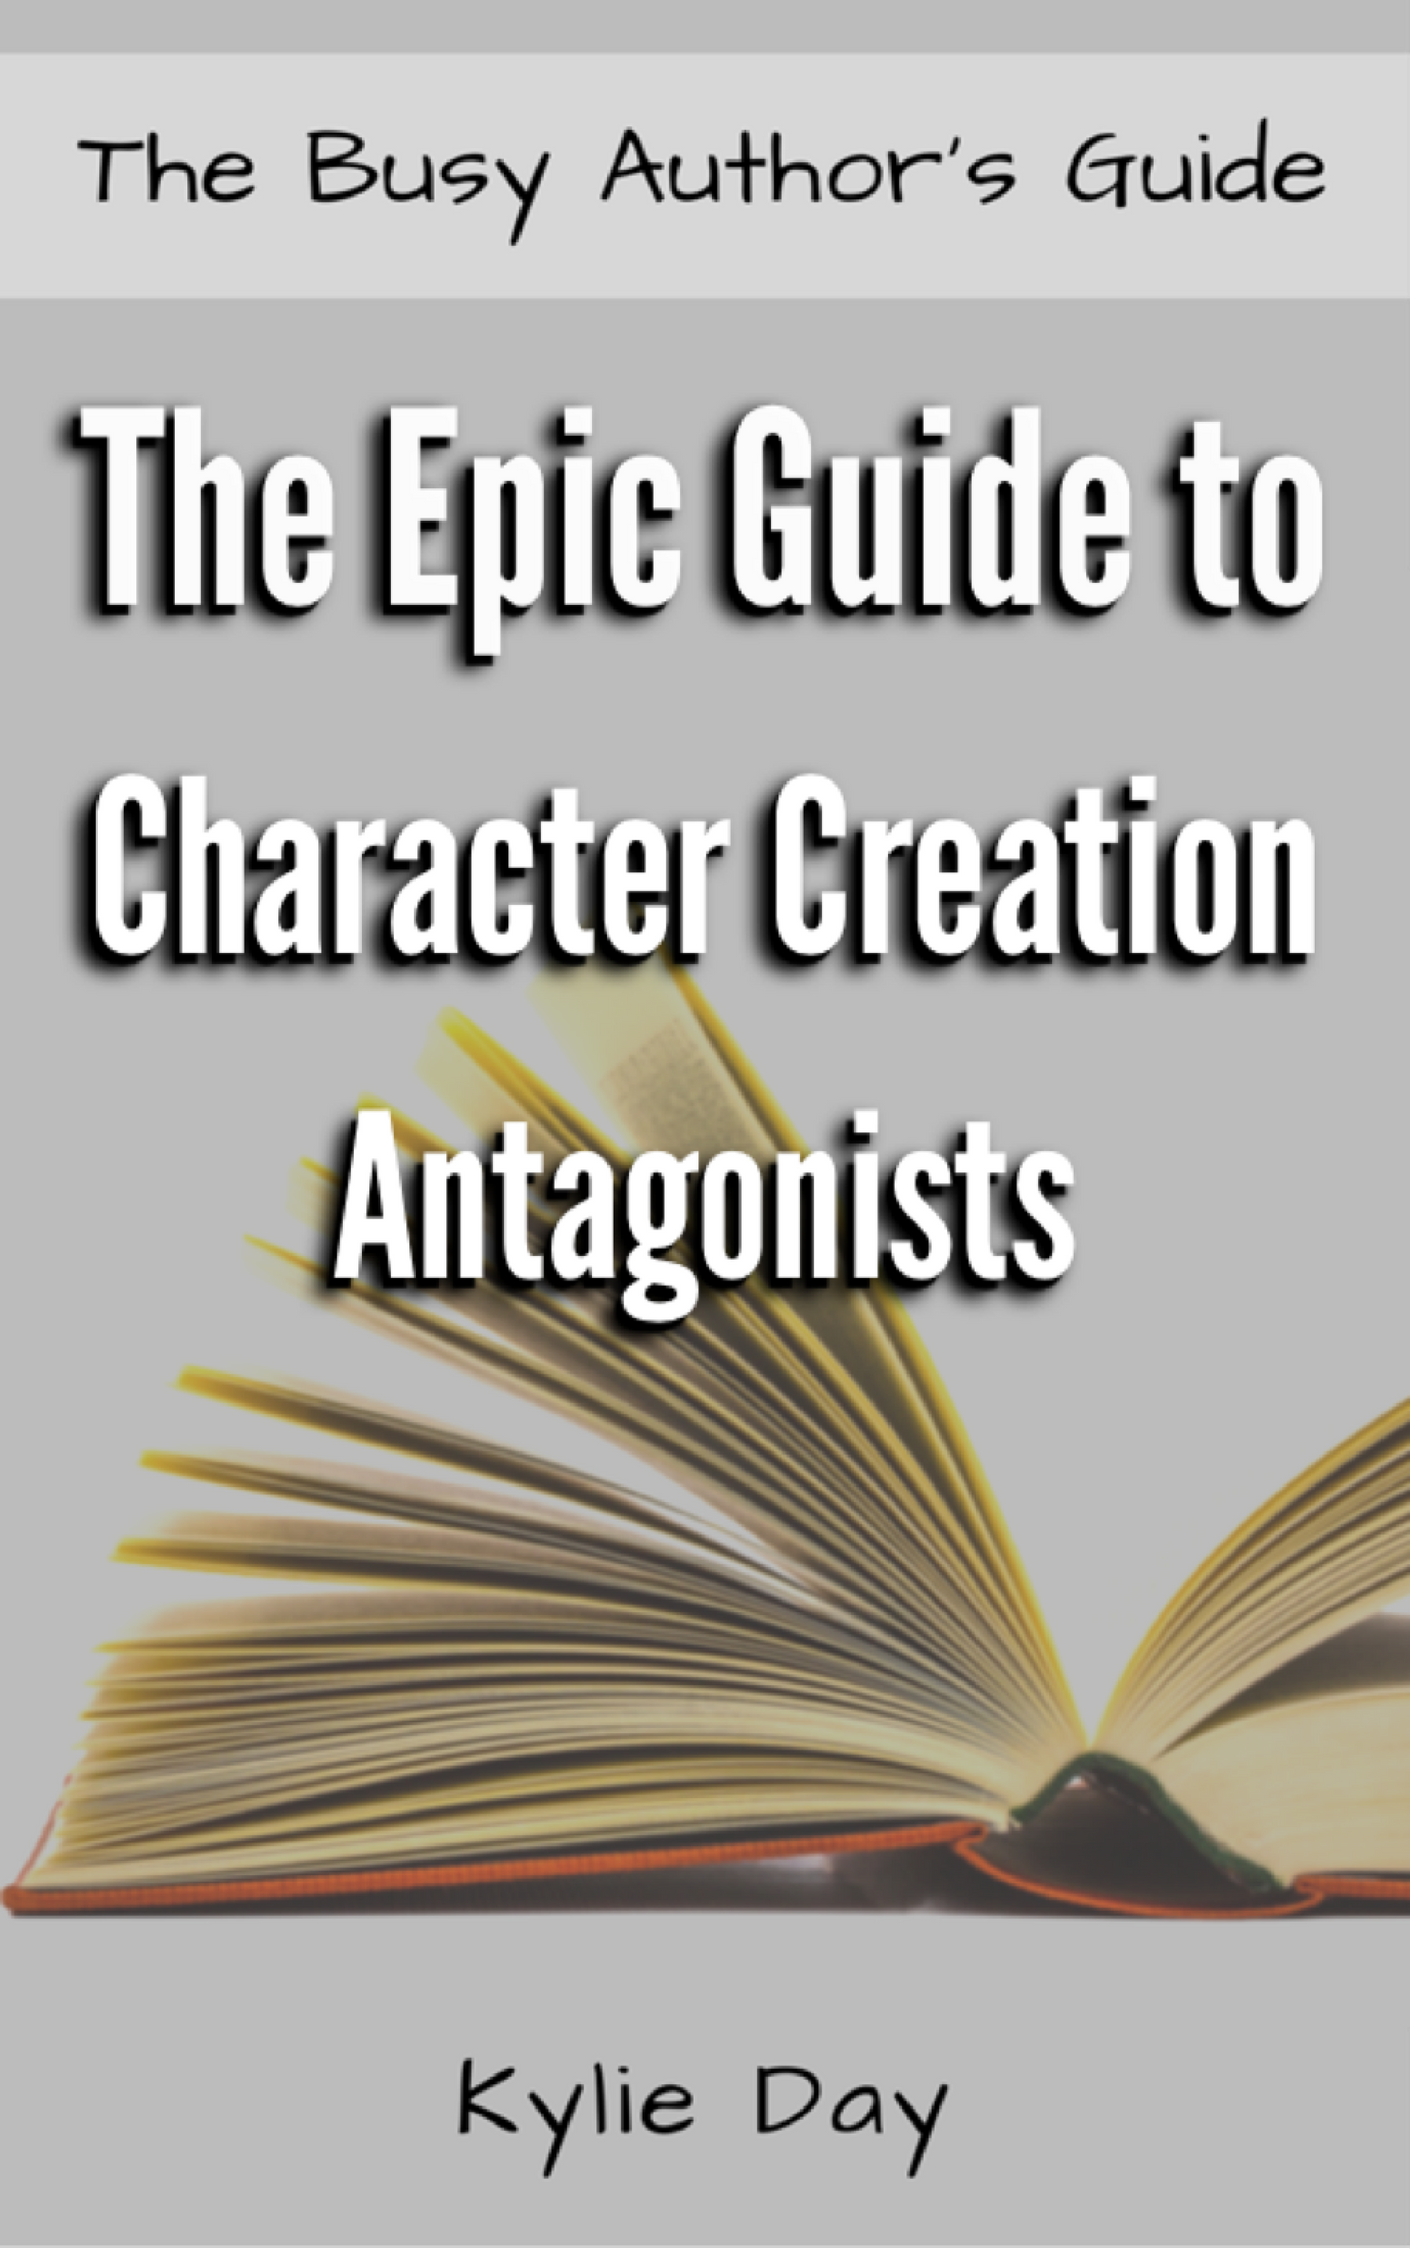 The Busy Author's Guide 7.png